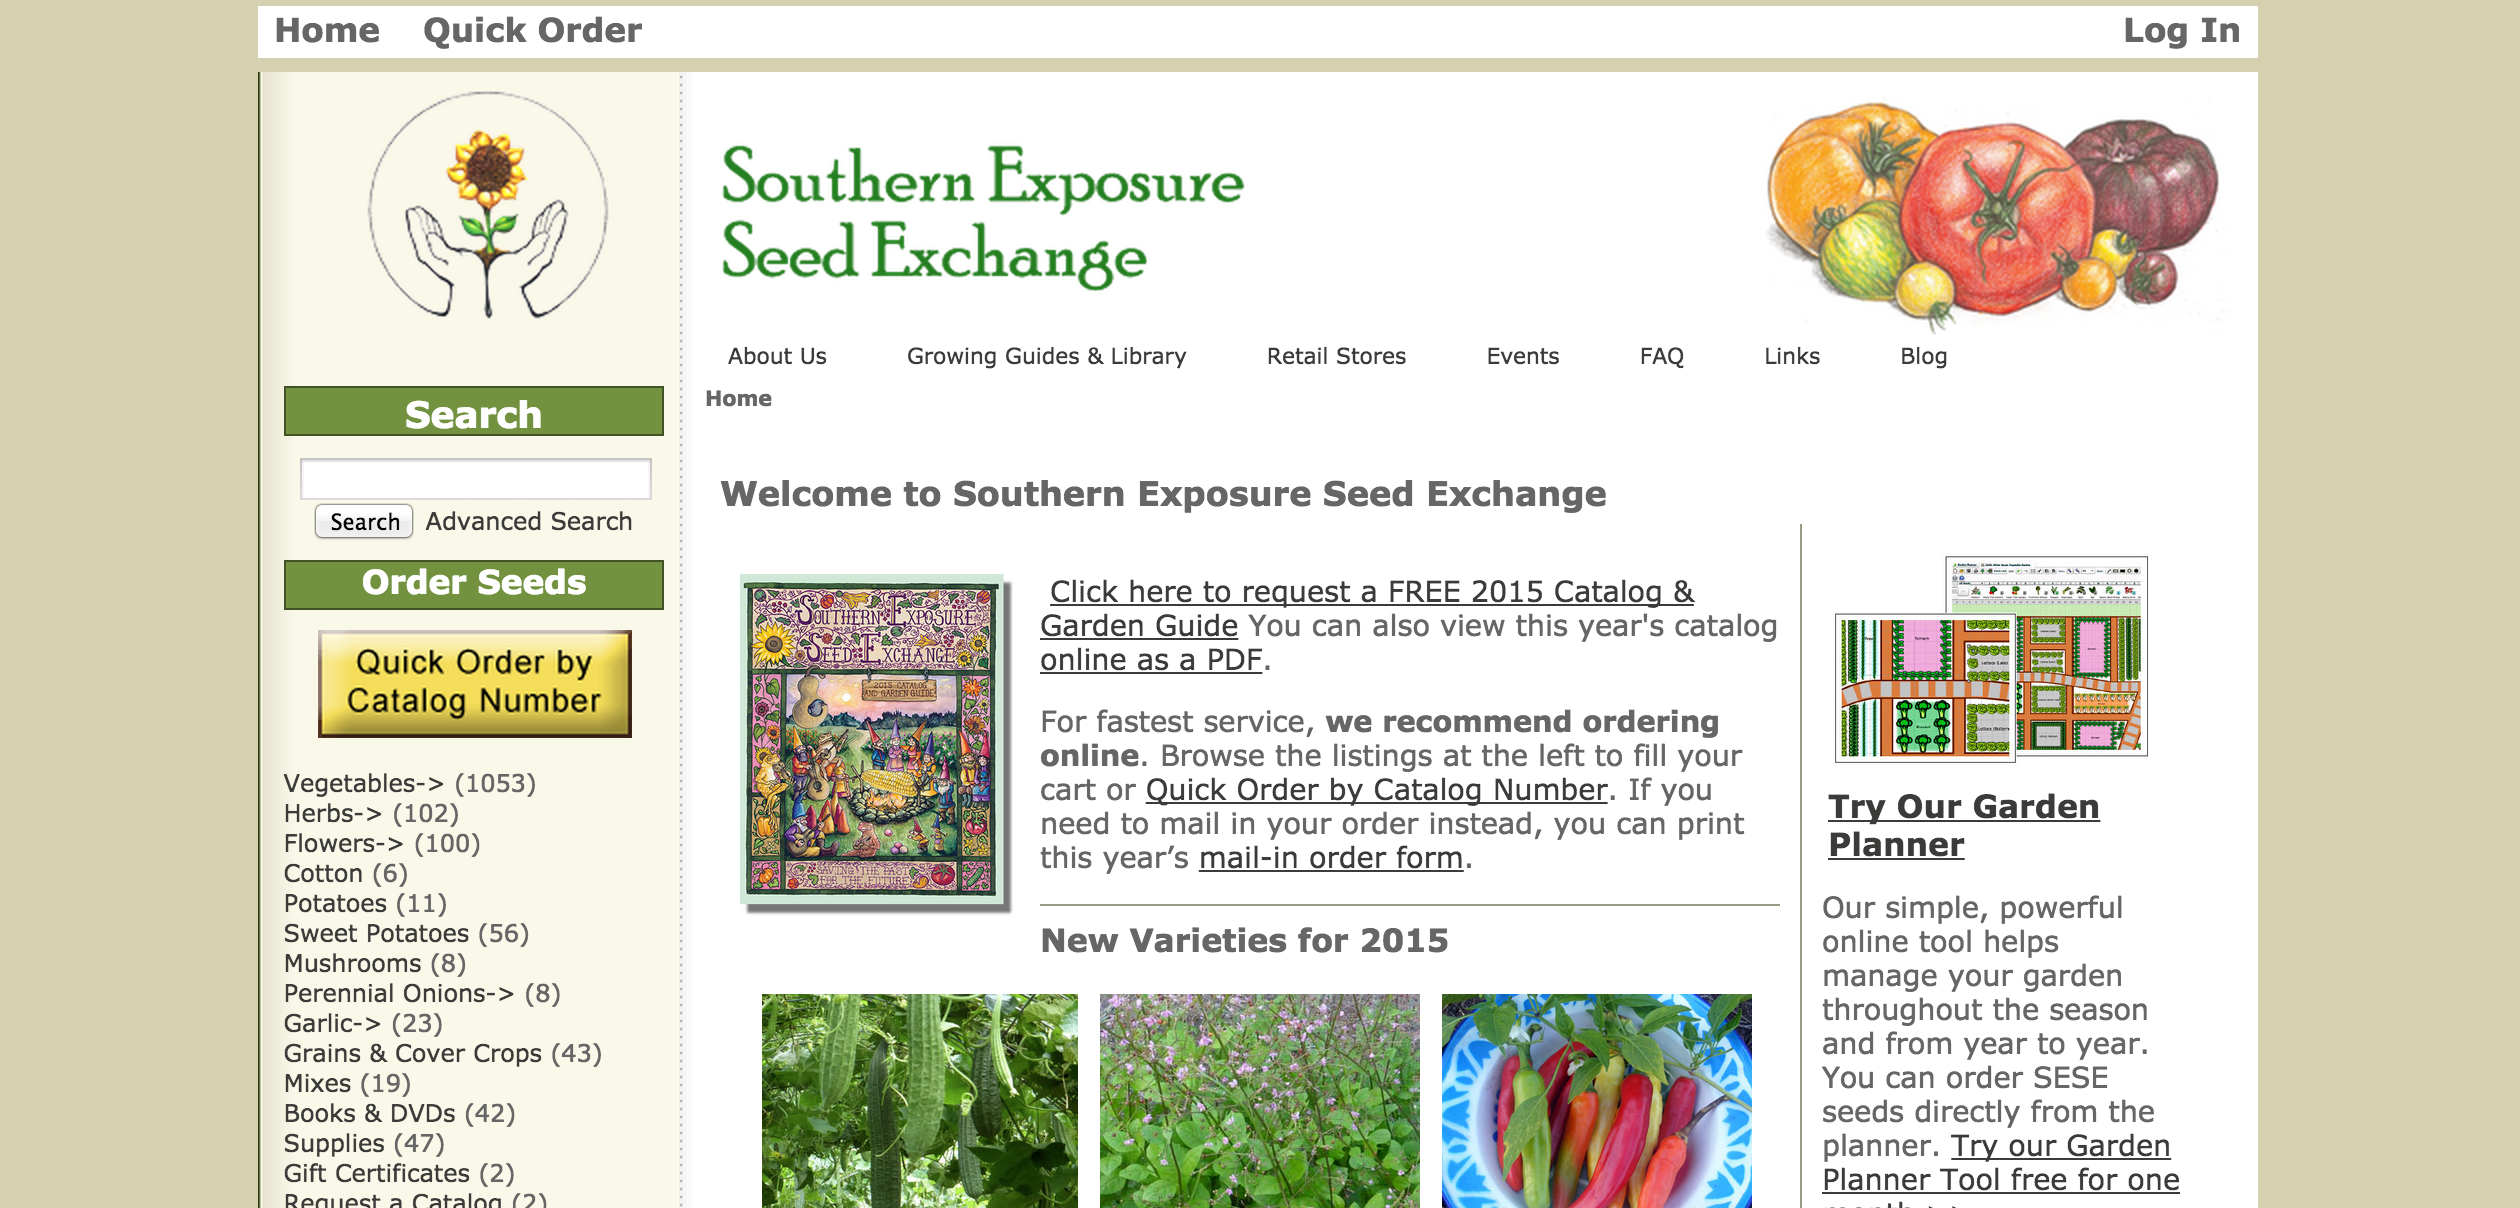 5. Southern Exposure Seed Exchange